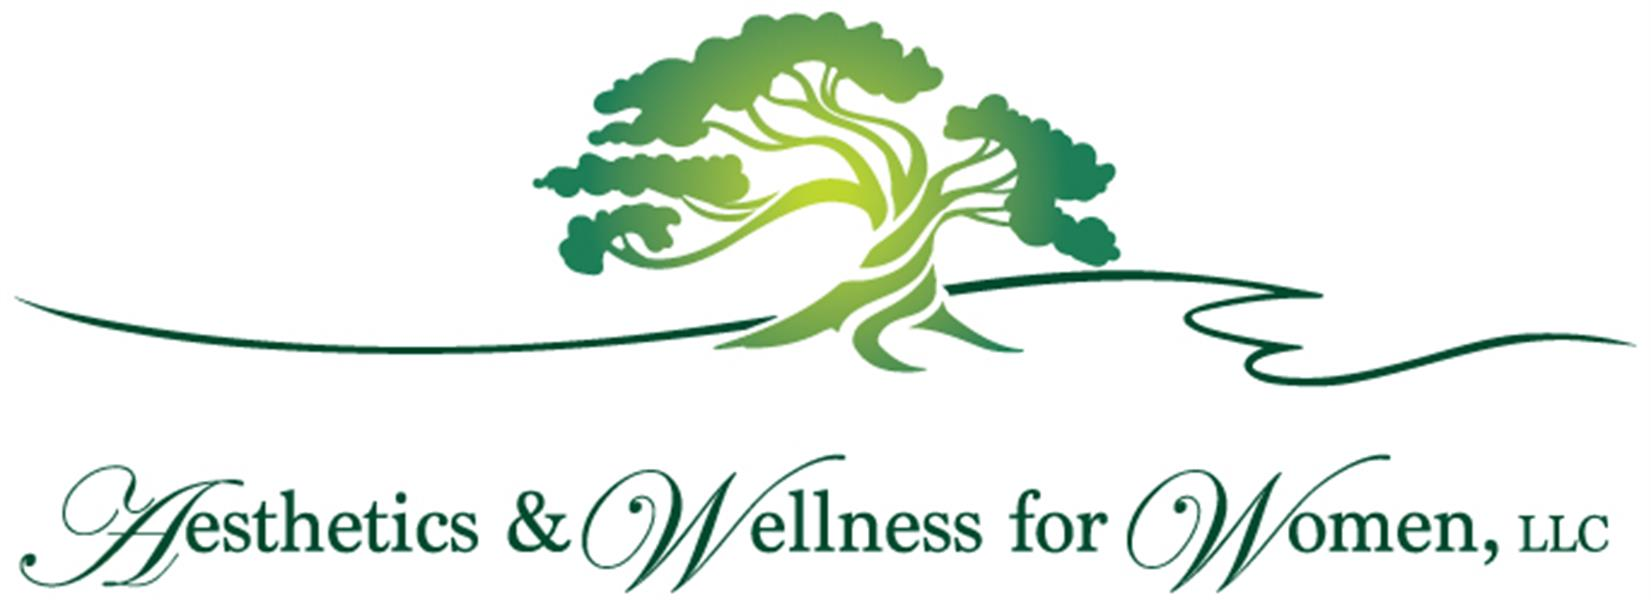 Aesthetics & Wellness for Women, LLC